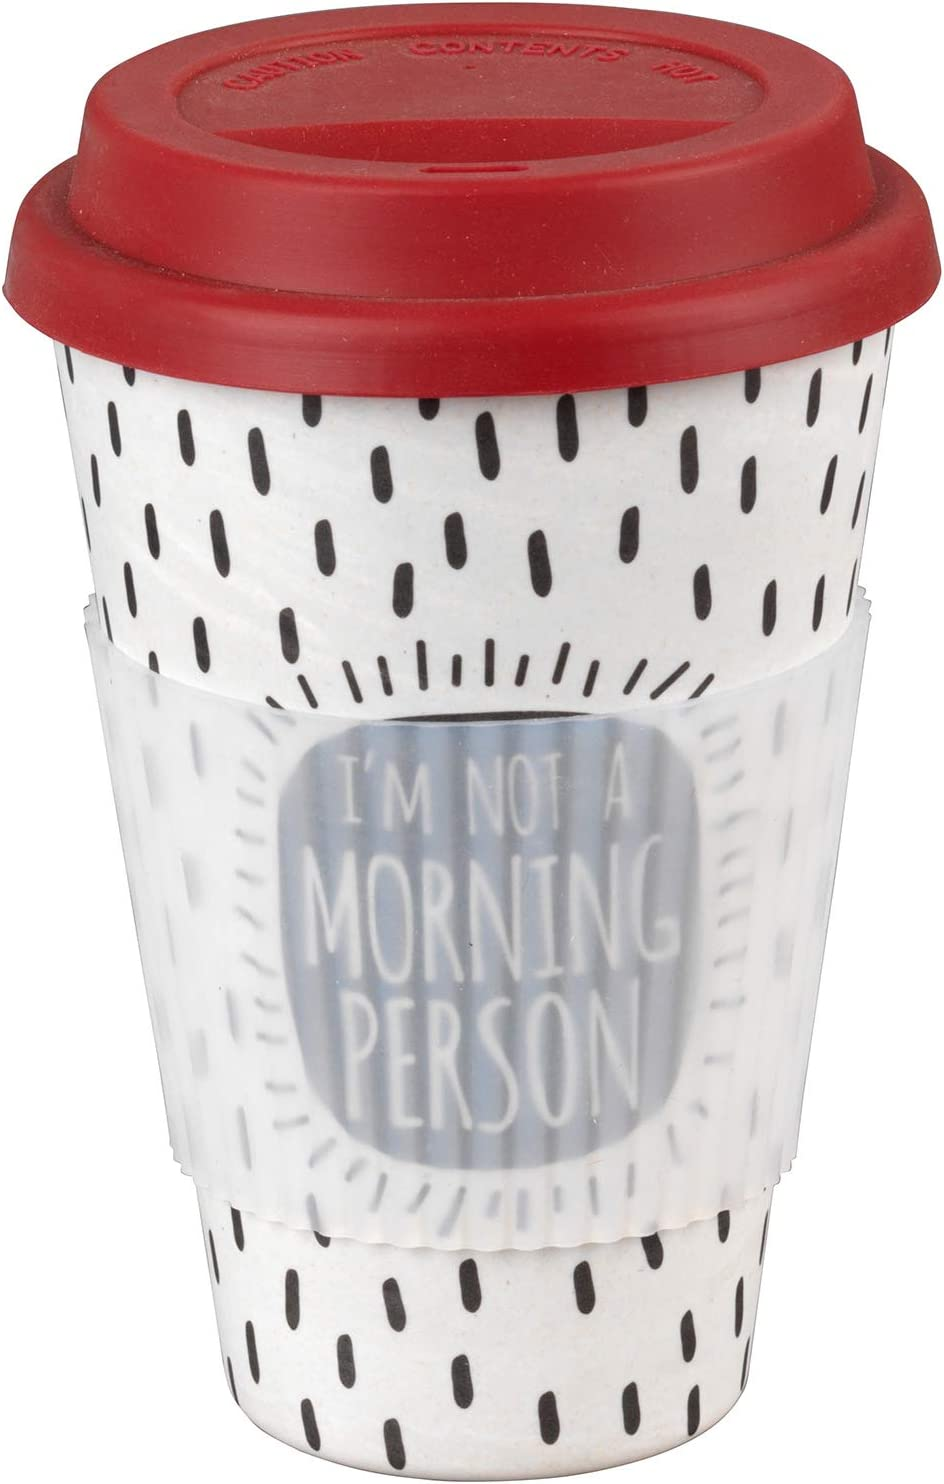 Bamboo Morning Person Reusable Coffee Cup              Swaps to reduce waste